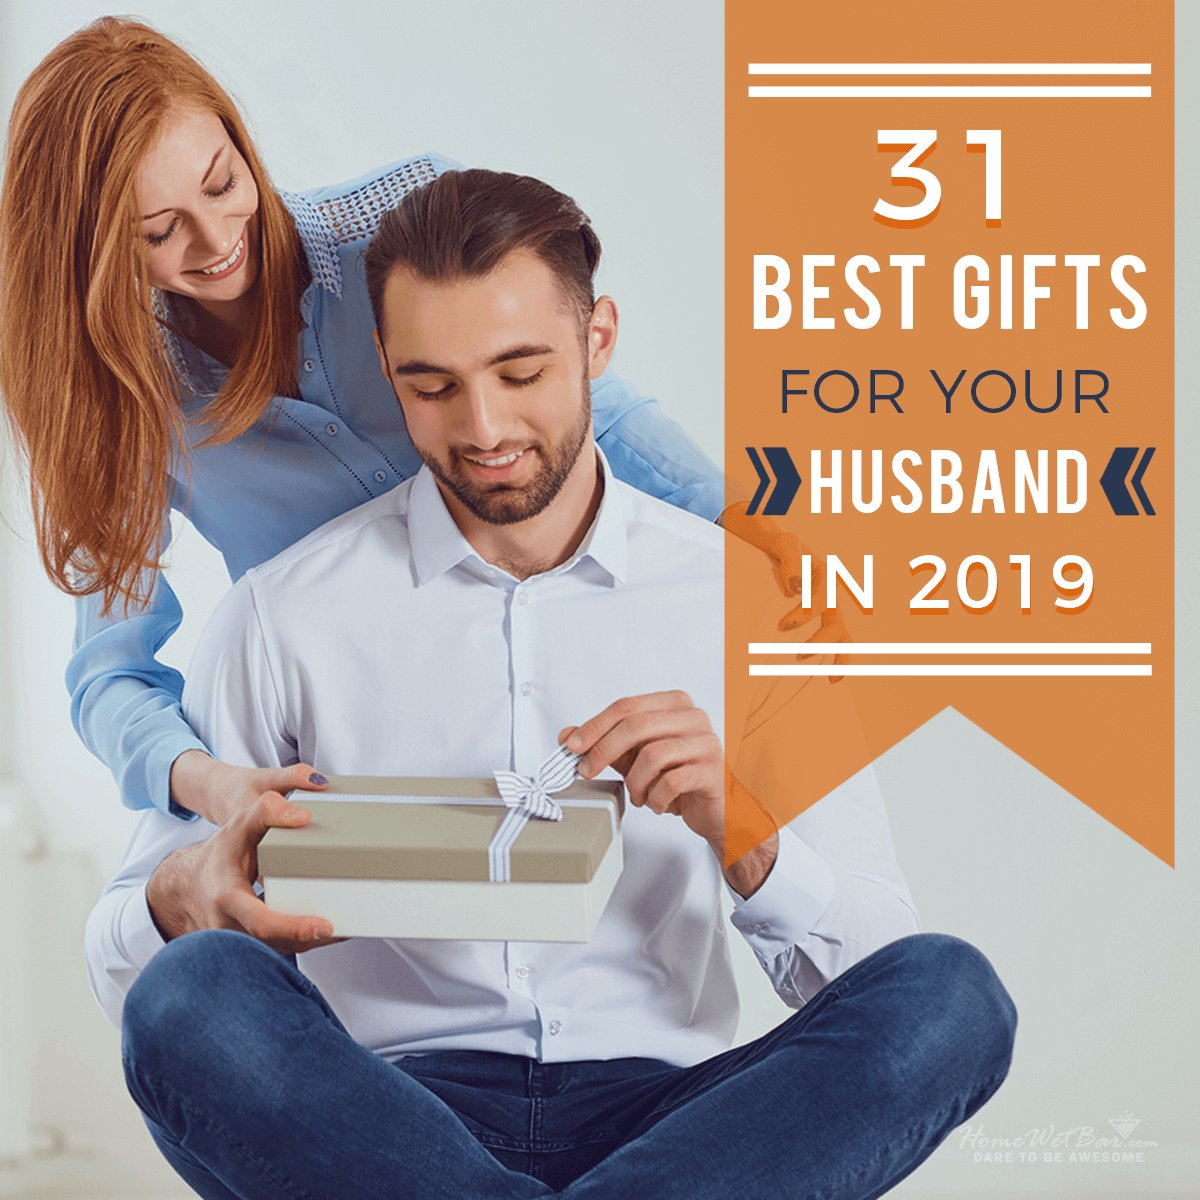 Unique Gifts For Christmas 2019: 31 Best Gifts For Your Husband In 2019